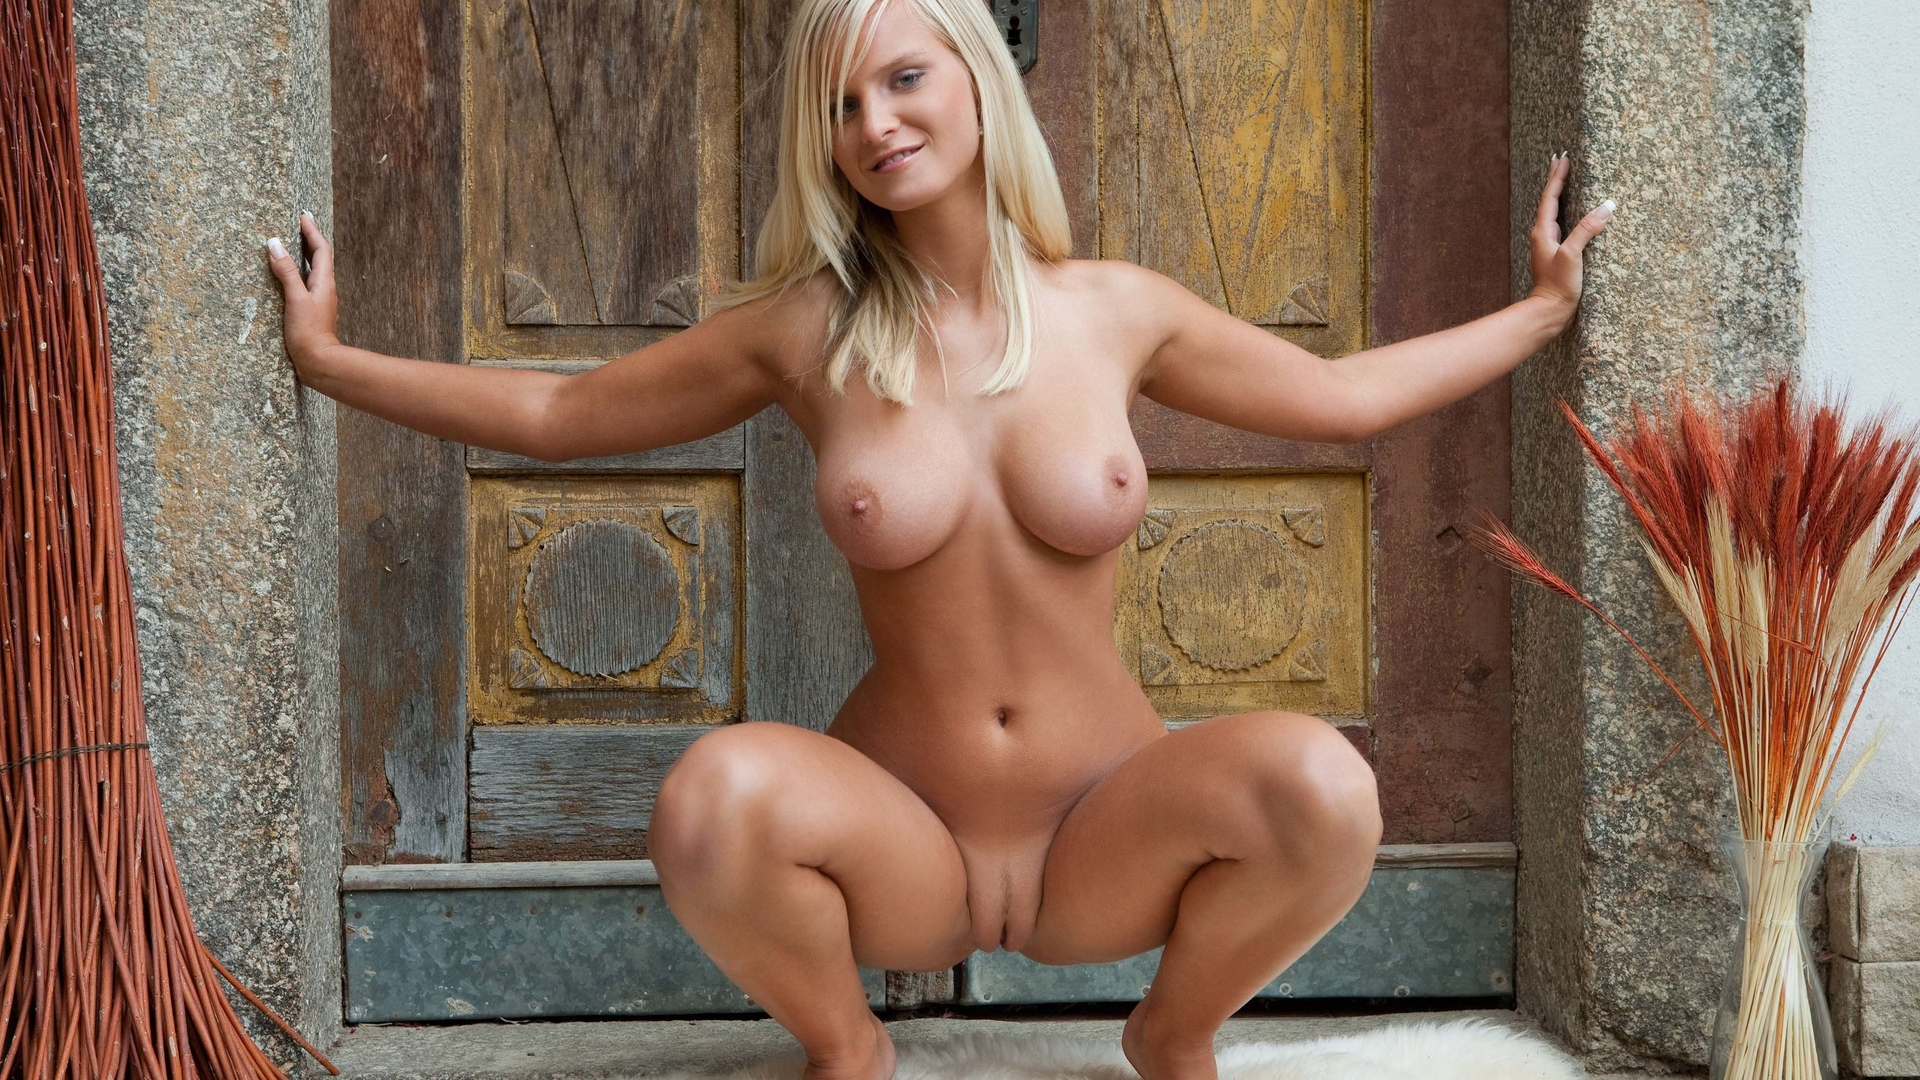 xxx-pictures-of-norwegian-girls-free-amateur-sex-forced